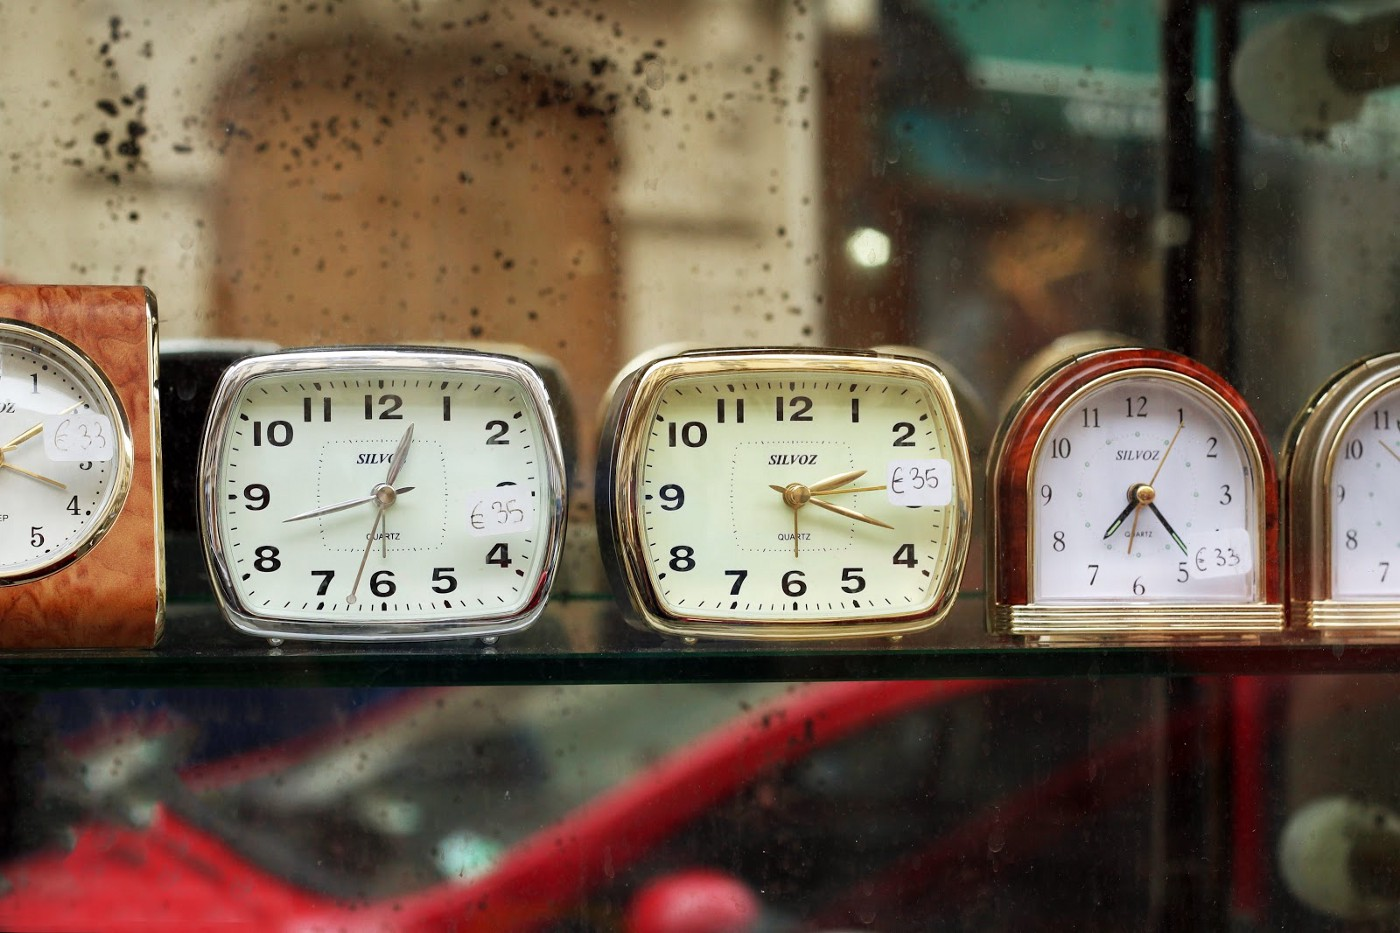 Five clocks with different times lined up next to each other on a shelf